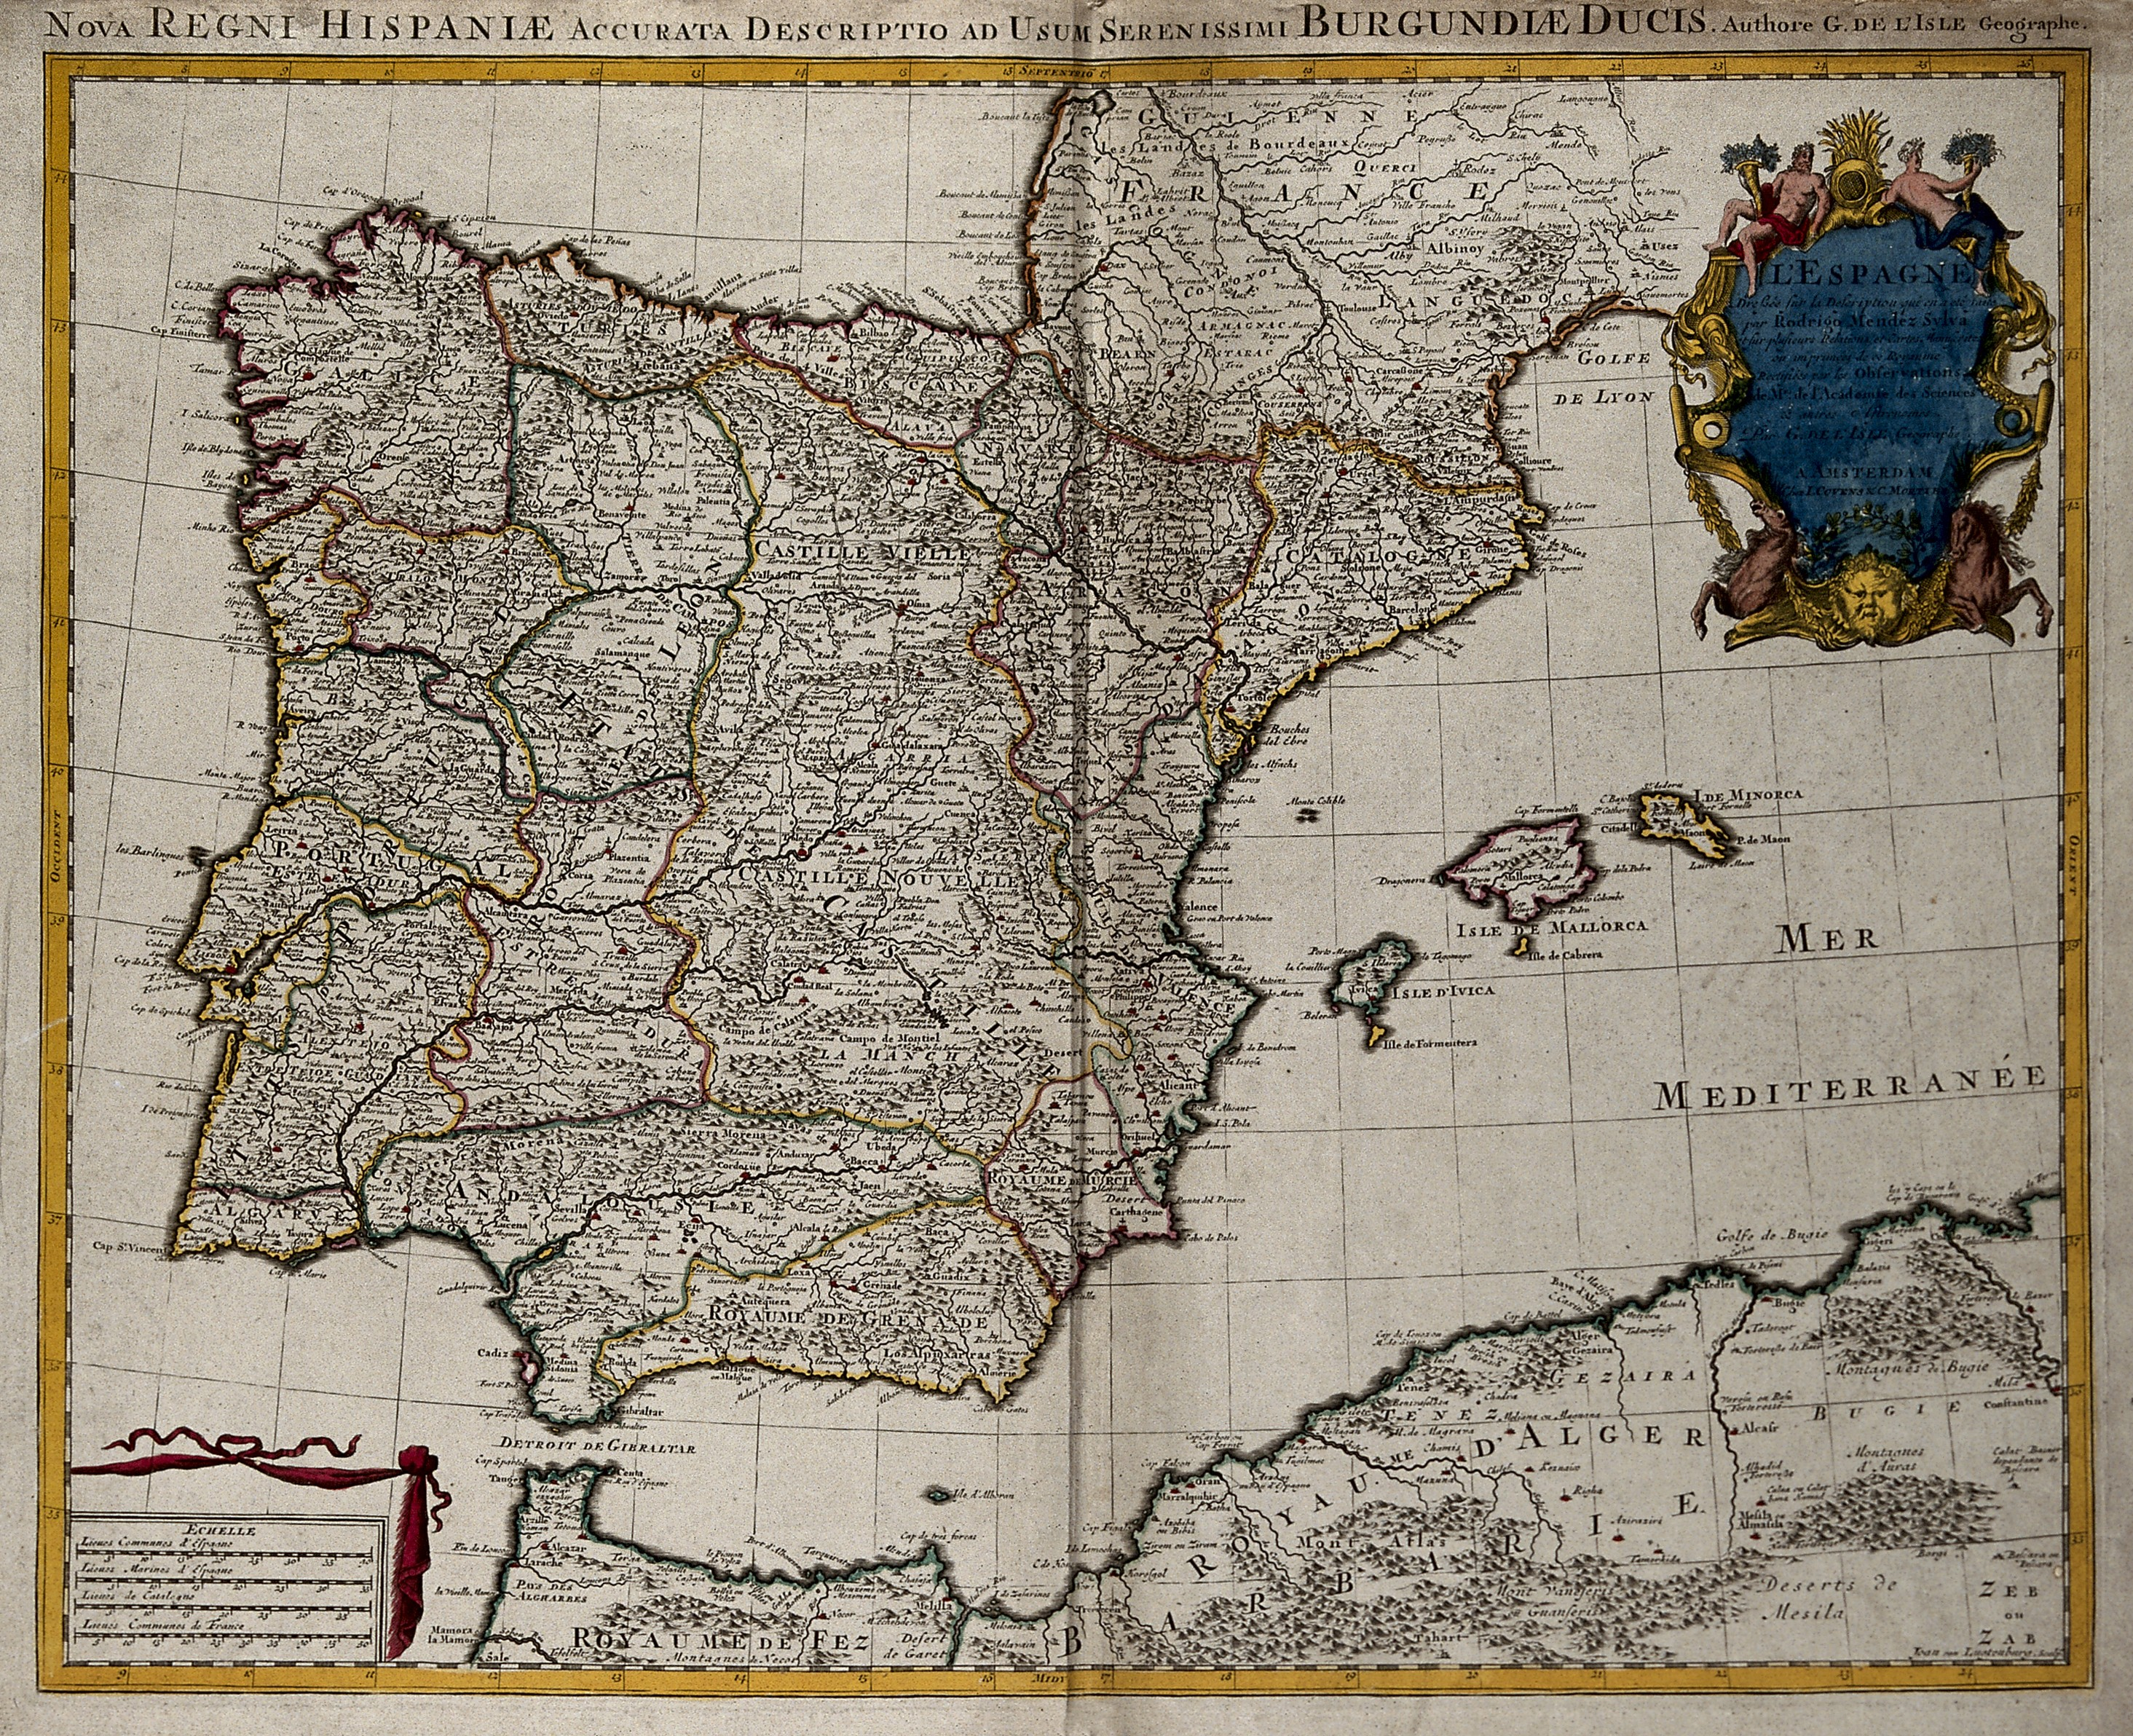 Alcanar Spain Map.File Map Of Spain And Portugal Wellcome V0049916 Jpg Wikimedia Commons